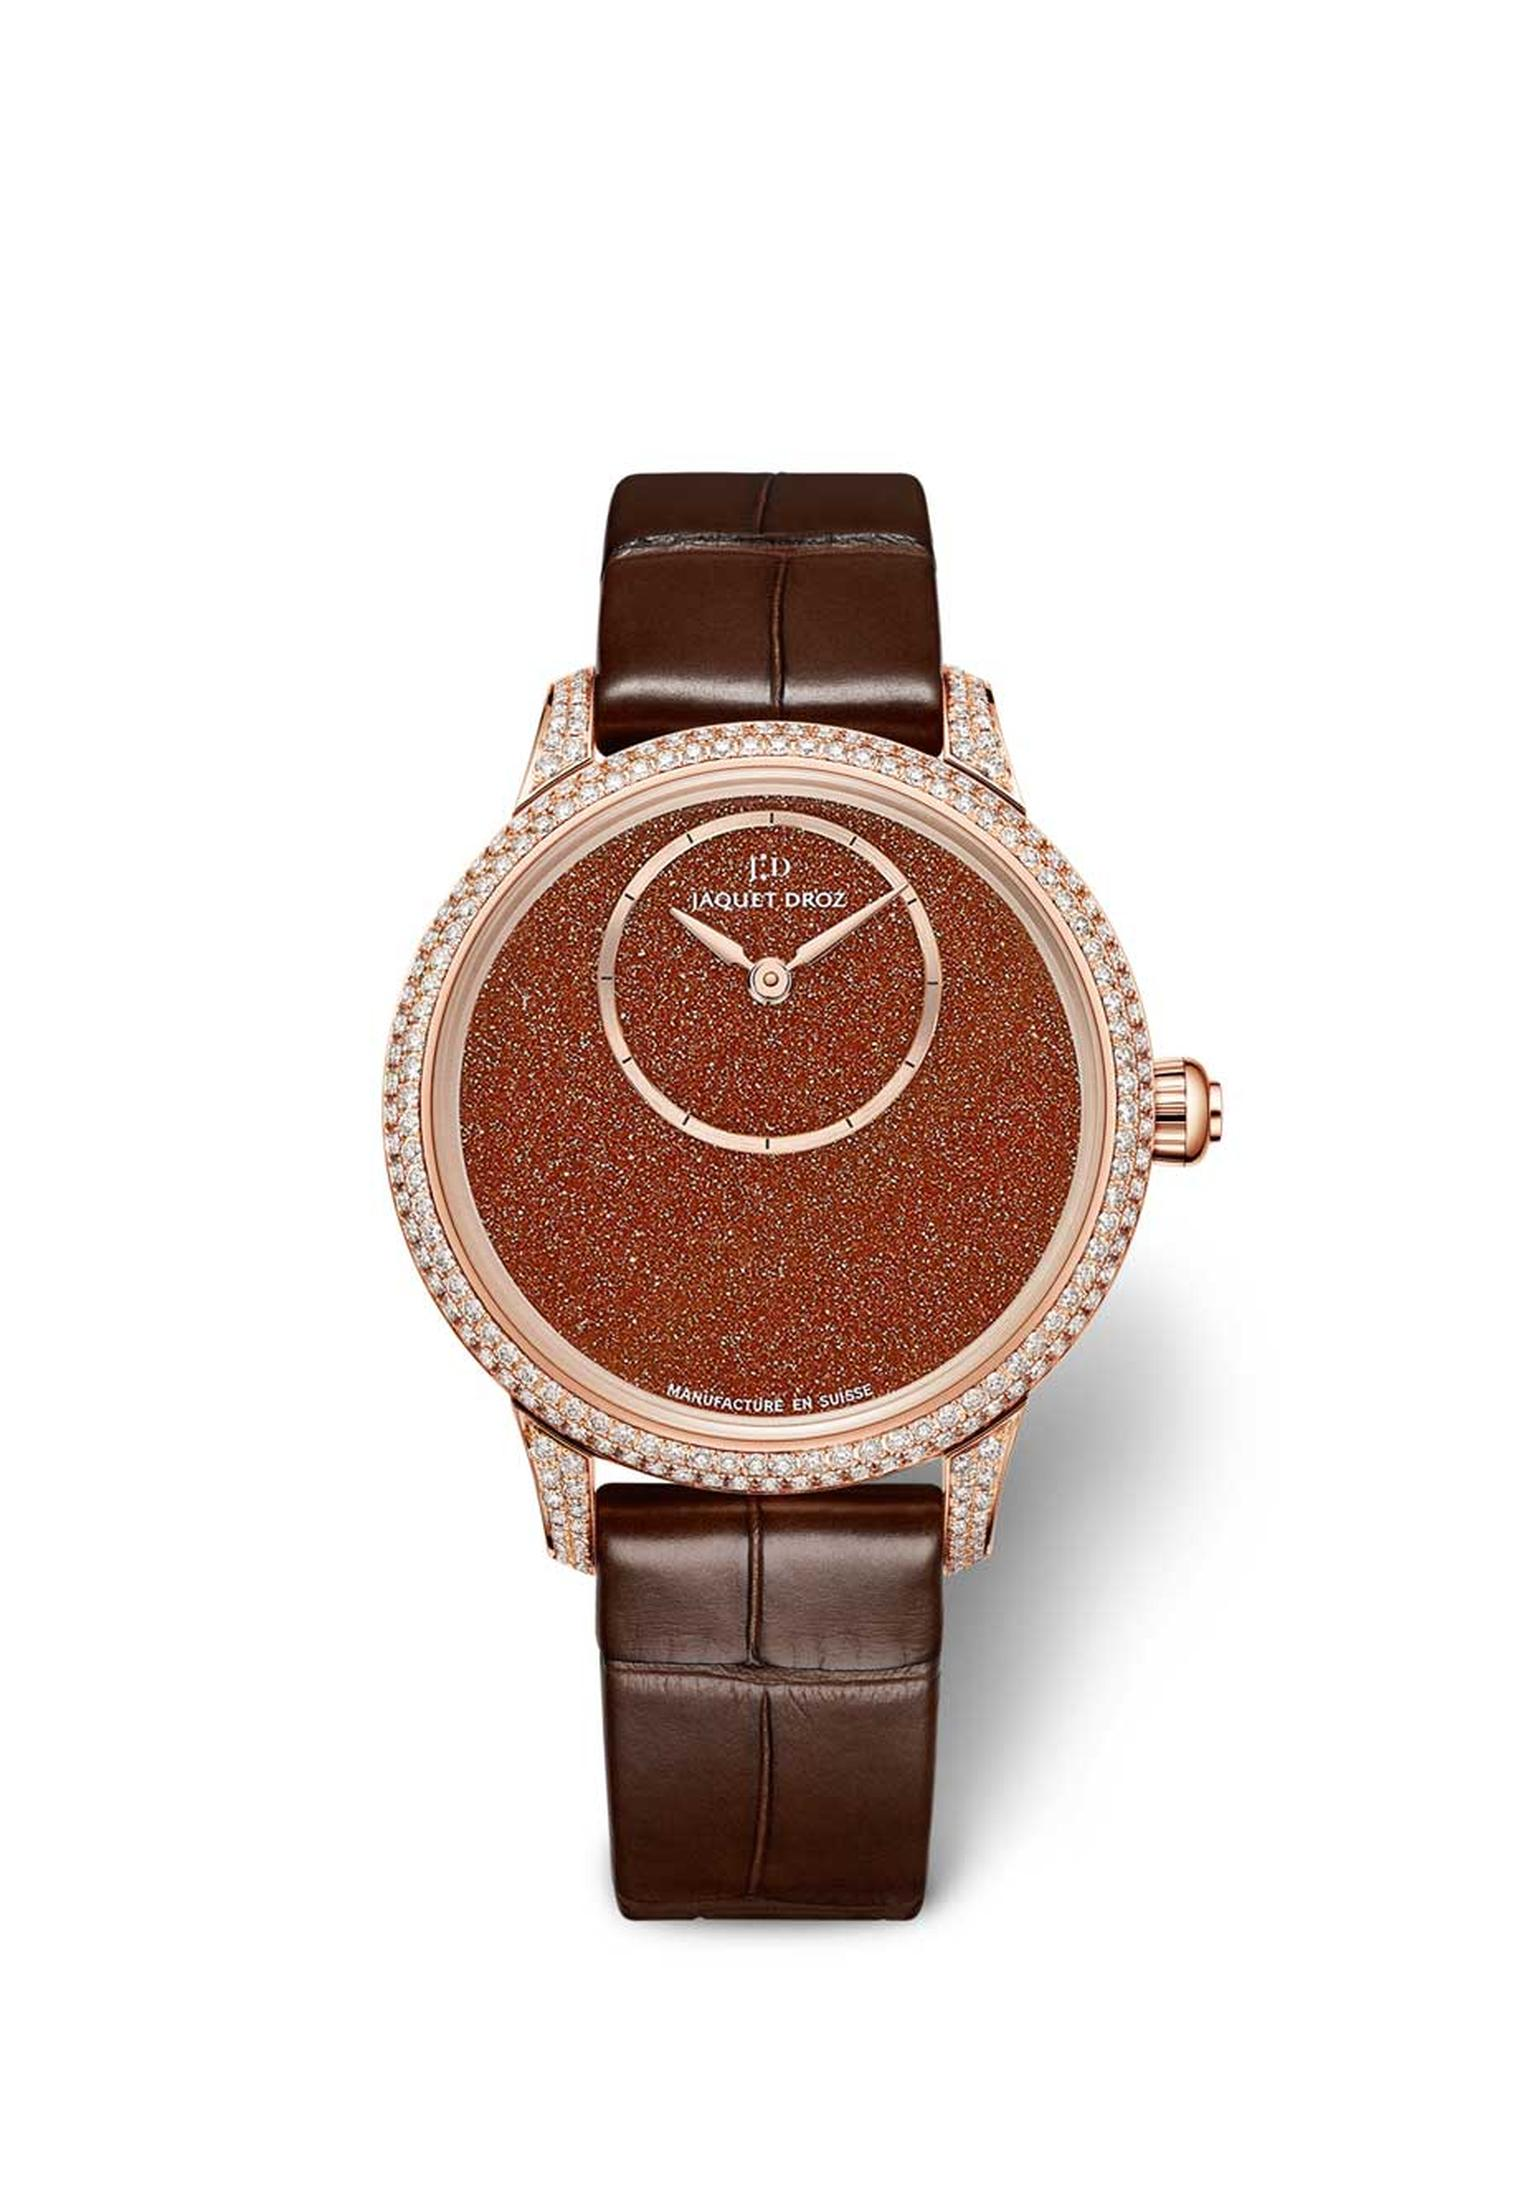 Jaquet Droz Petite Heure Minute Sunstone watch with a Sunstone dial, off-centred hours and minutes disc, and a 35mm rose gold case set with 232 diamonds. Limited edition of 88 pieces.